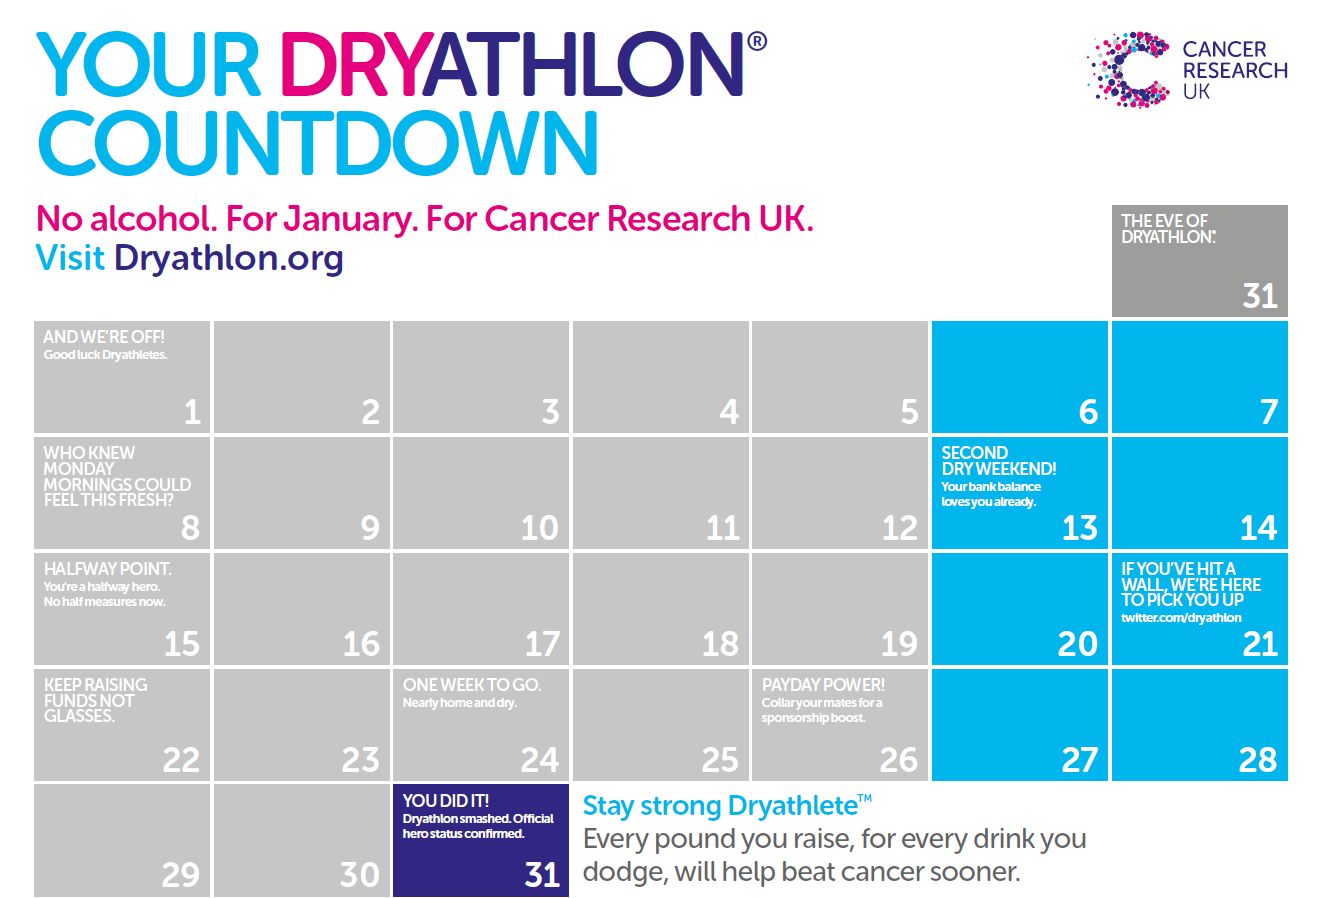 Dryathlon Fundraising Tools and Ideas   Cancer Research UK